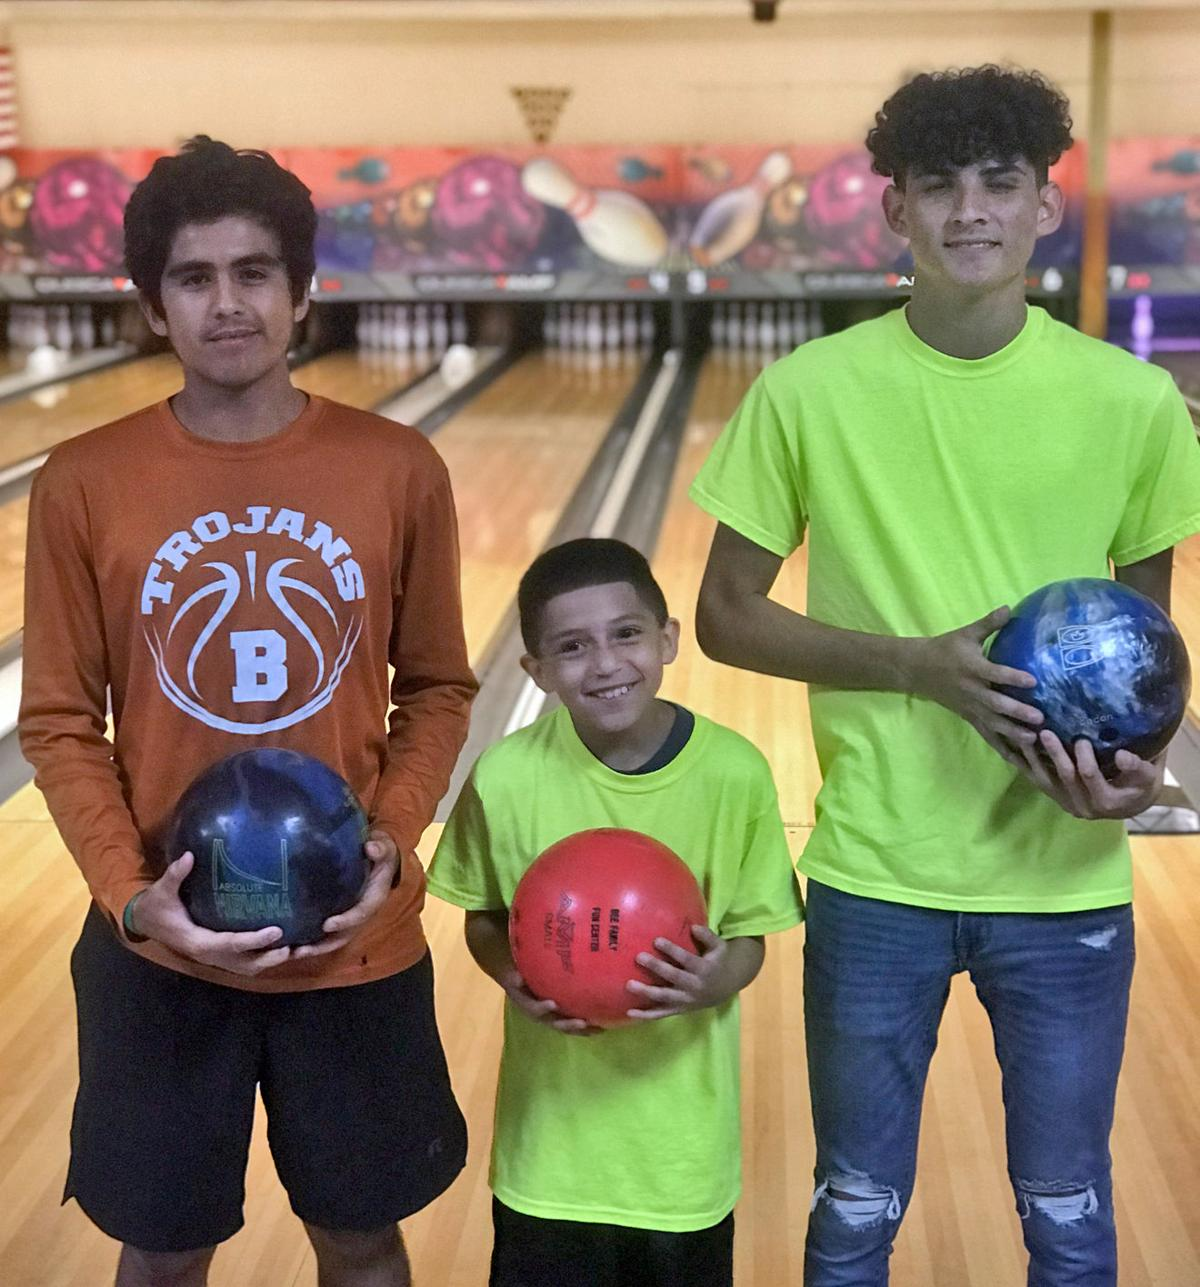 spt 5-31 youth bowling d2.jpg